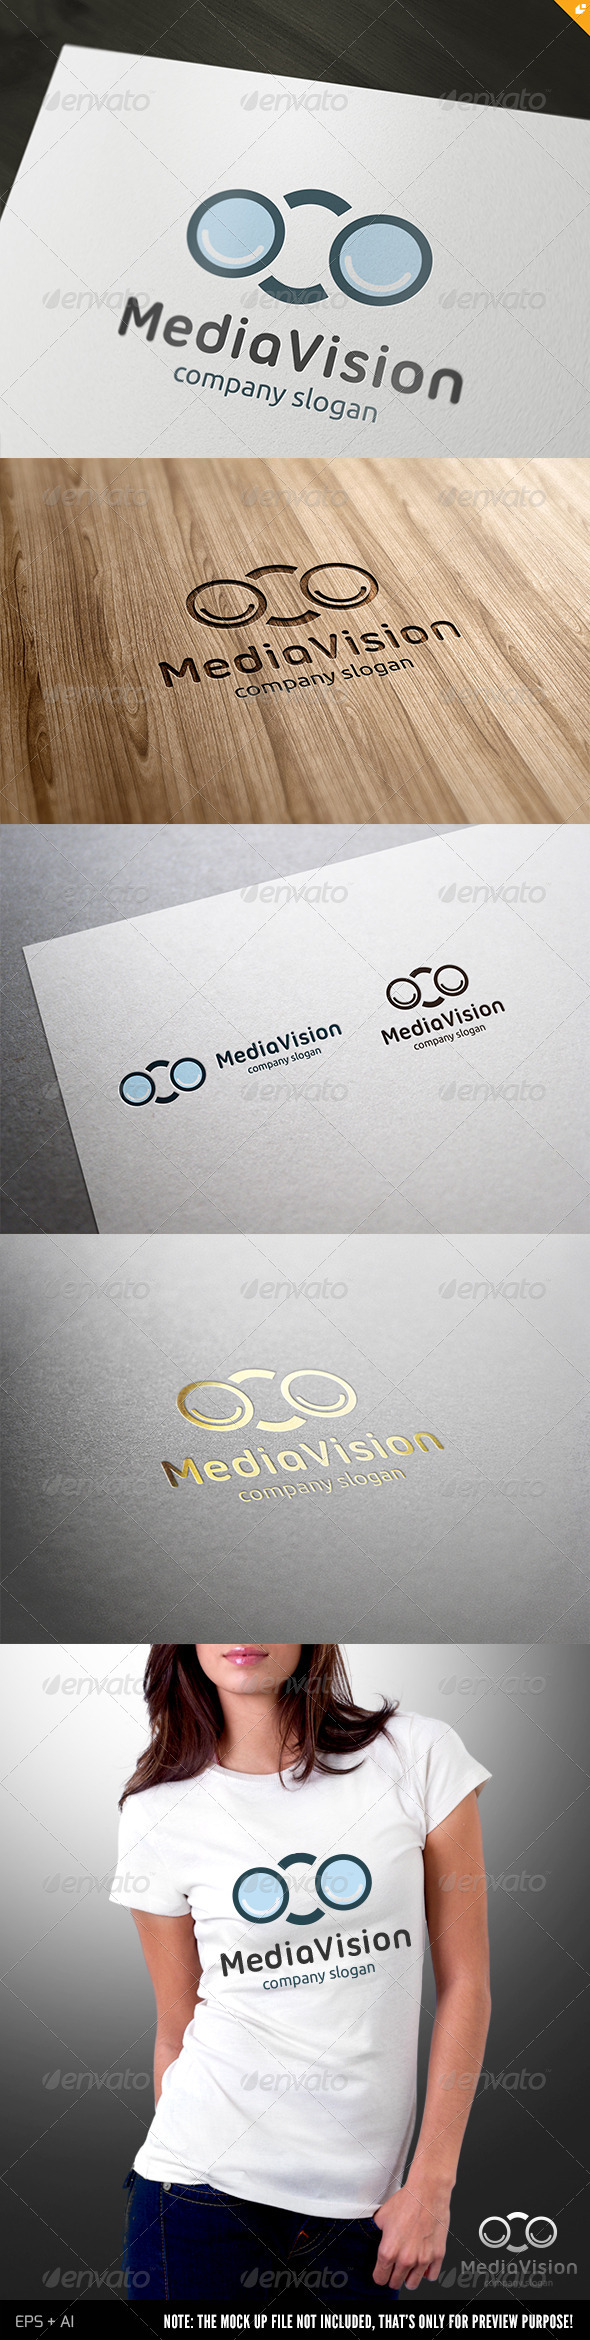 Media Vision Logo - Objects Logo Templates